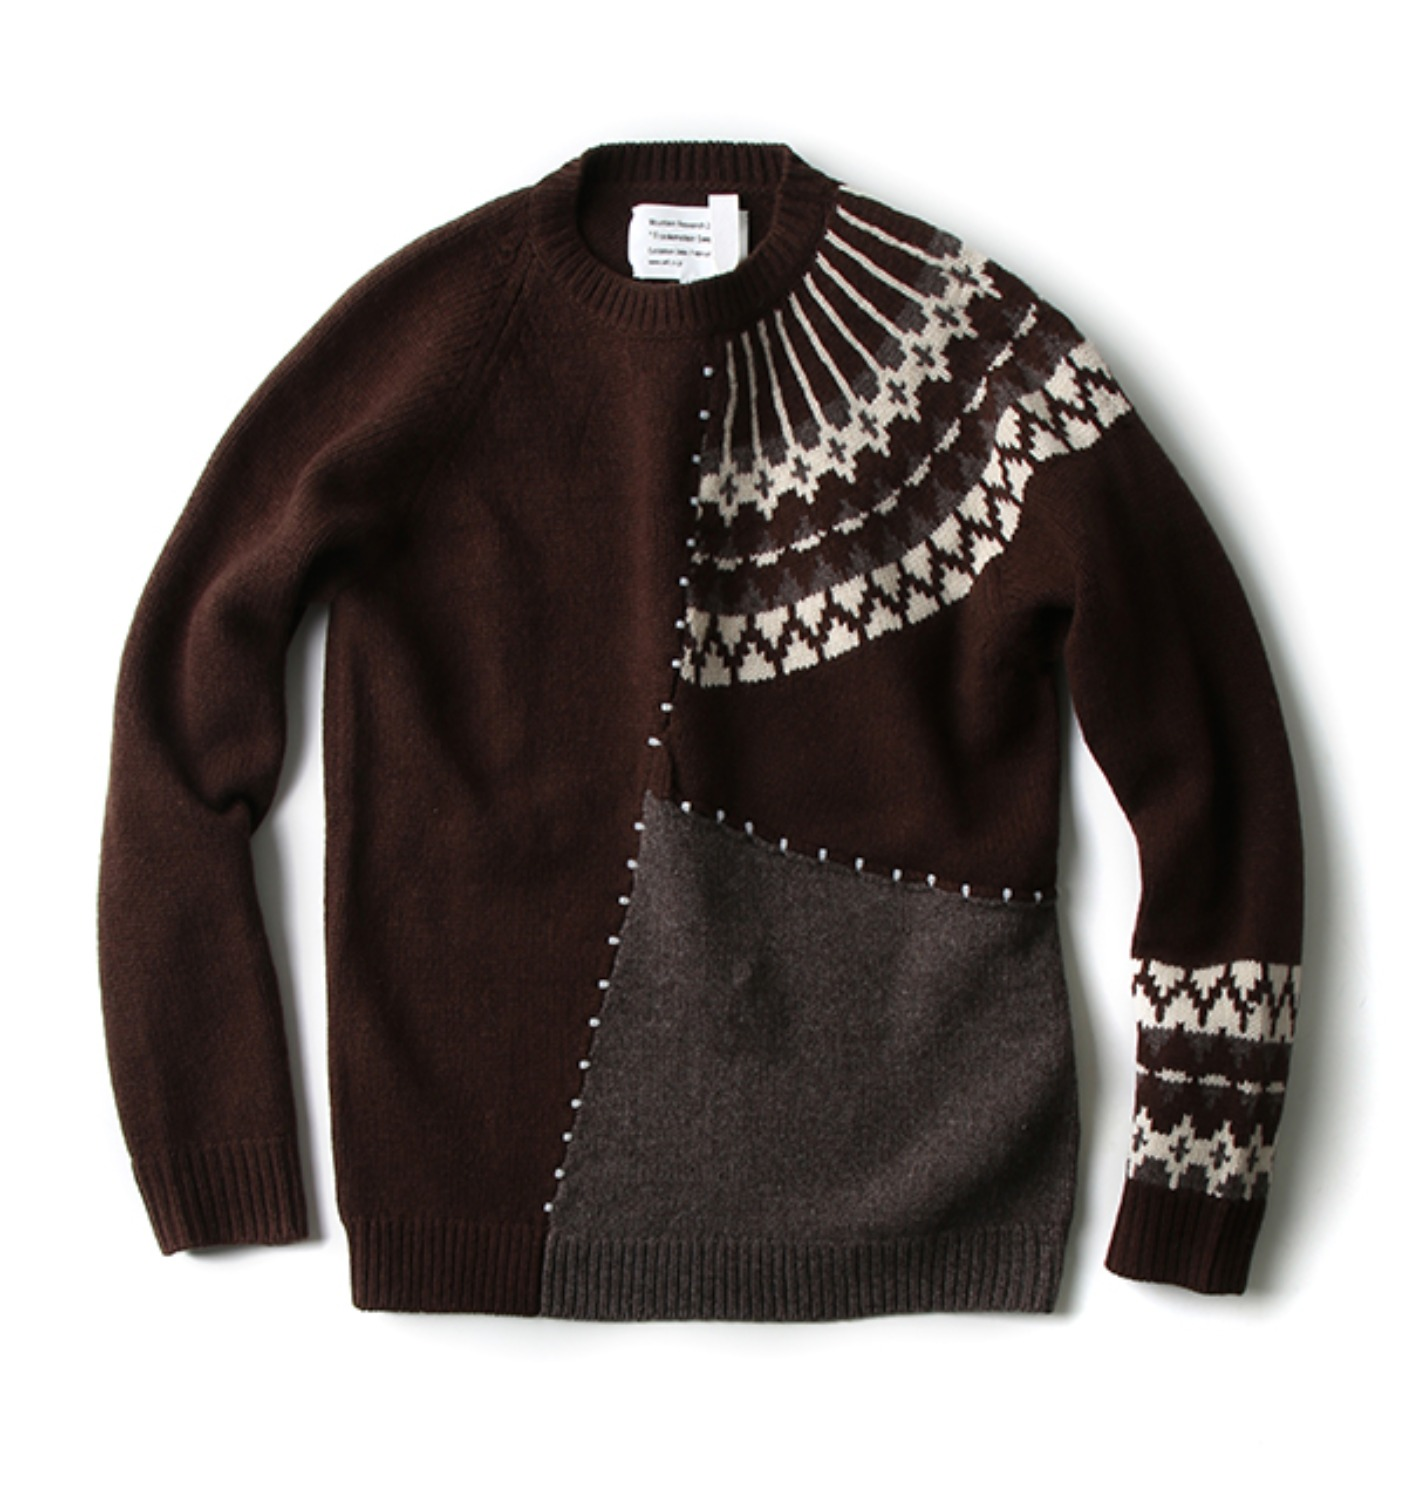 FRANKENSTEIN SWEATER(MTR-2330) BROWN